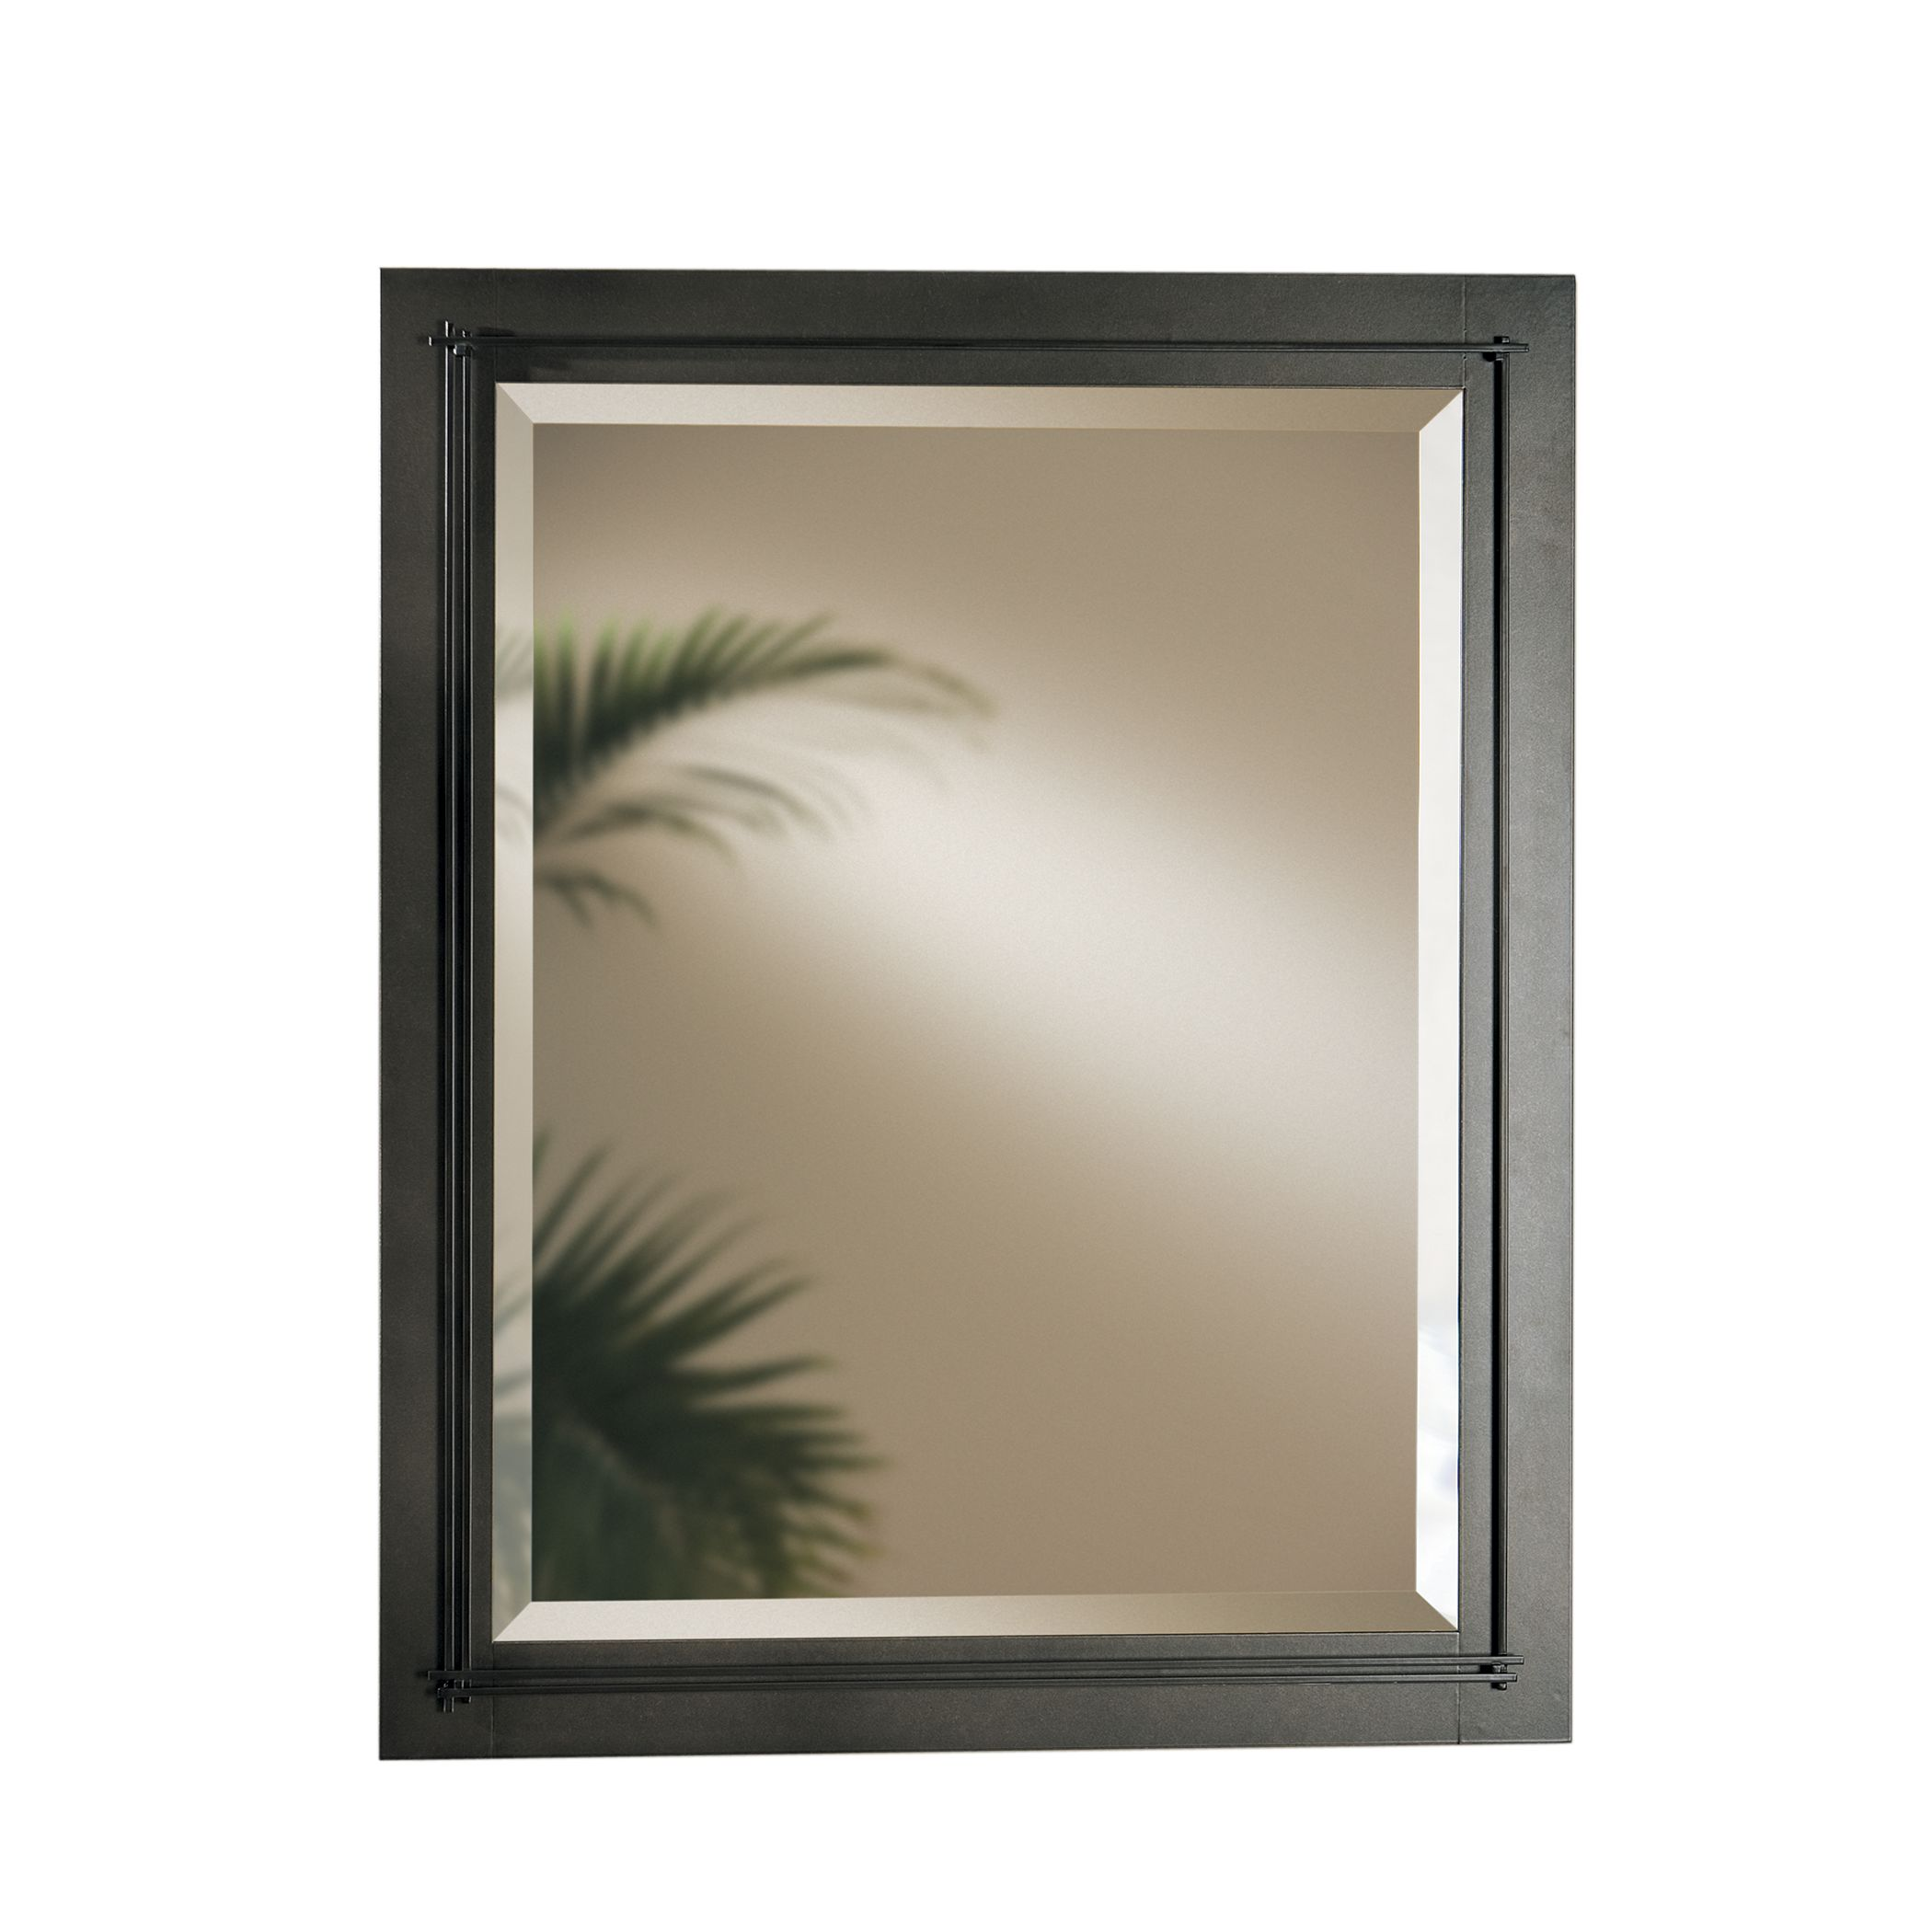 metra large beveled mirror hubbardton forge